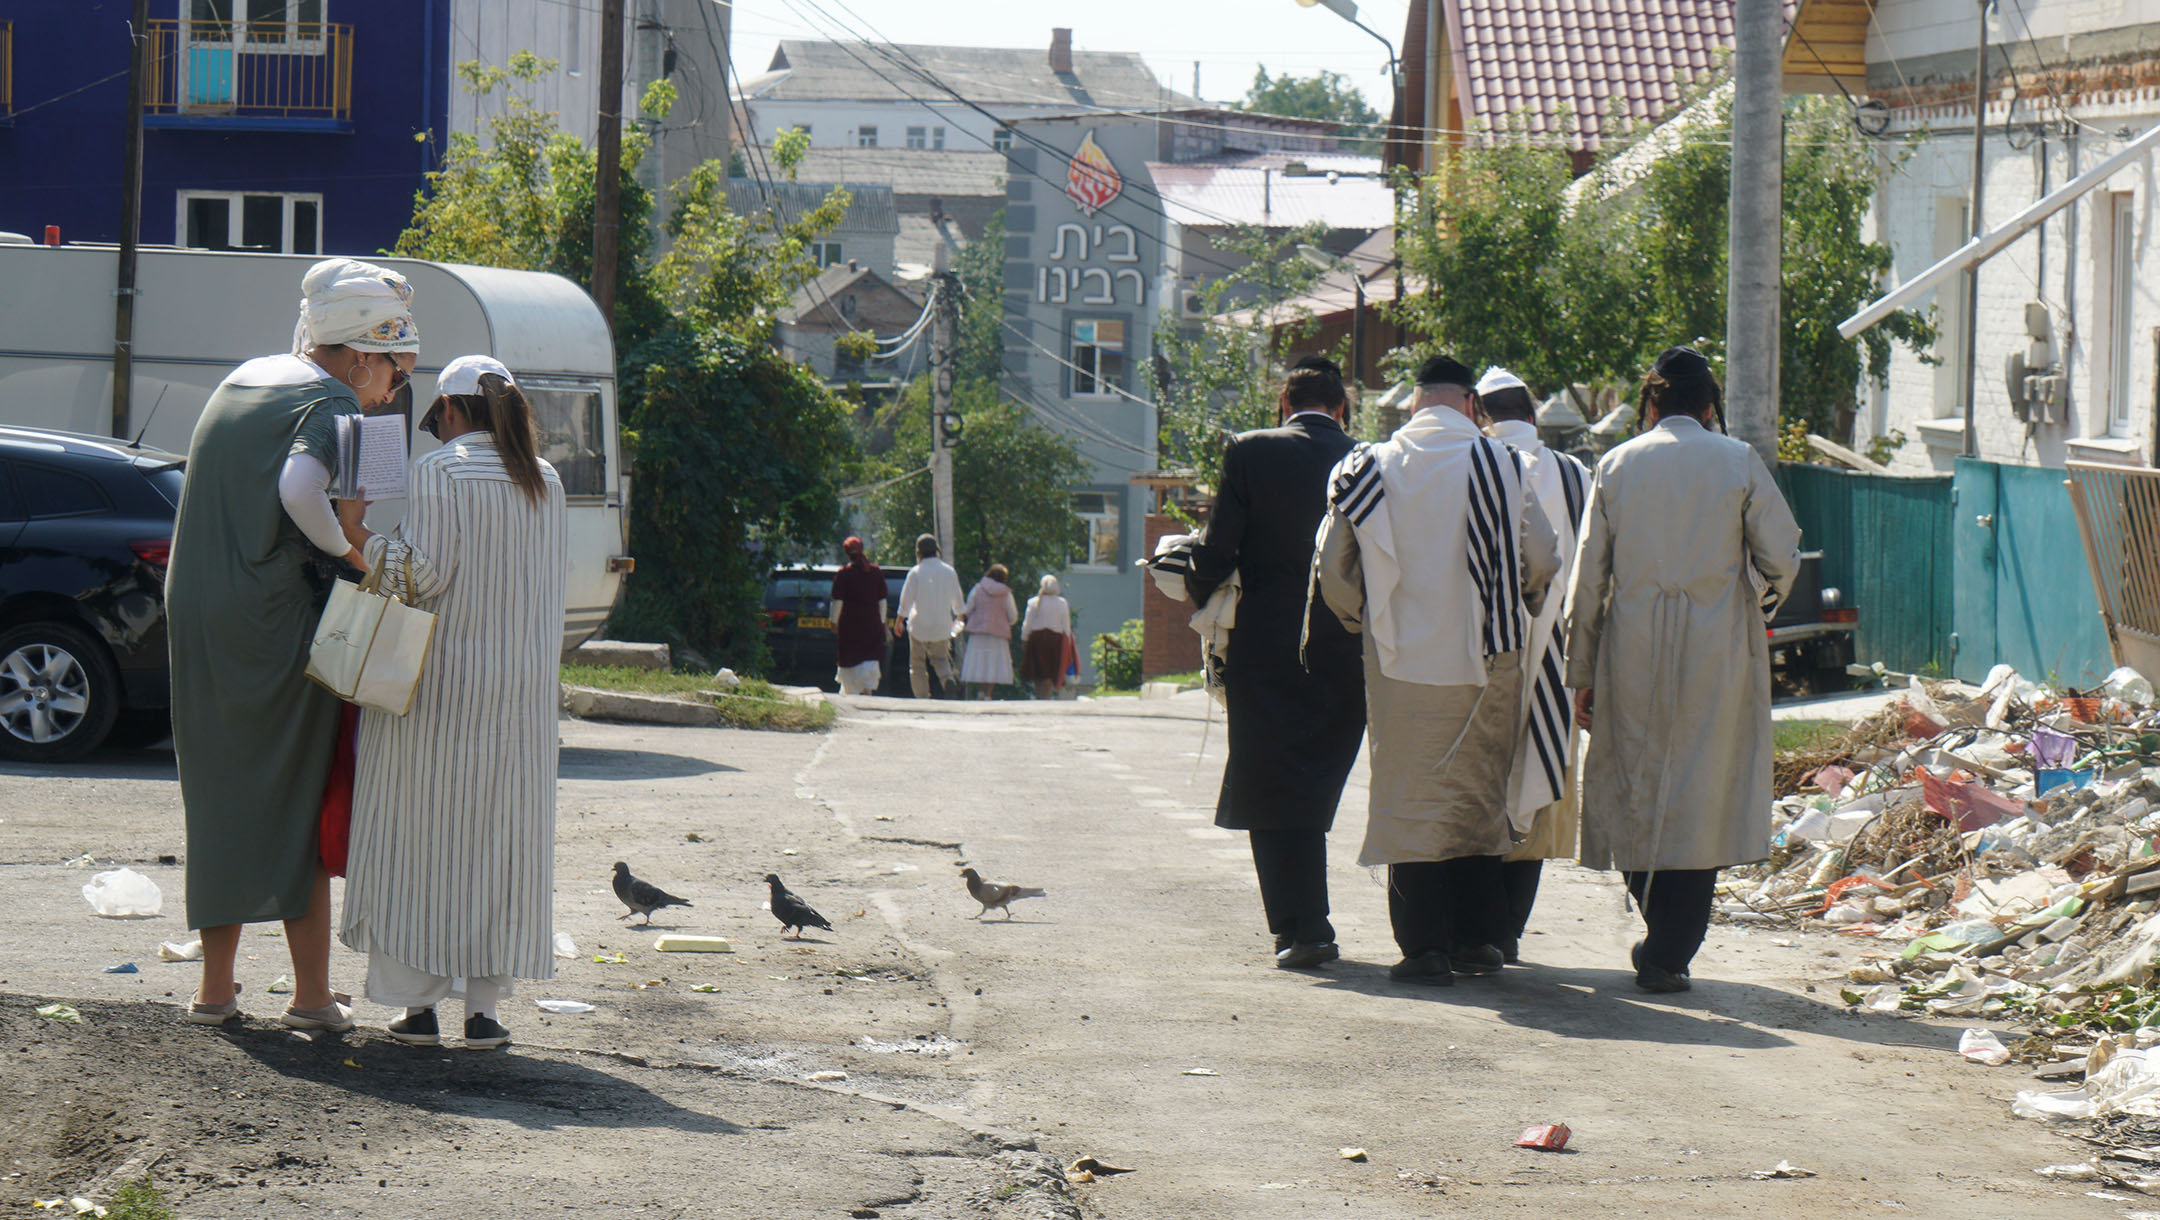 Jews walk down an alley leading to Pushkina Street in Uman, Ukraine on Sept. 8, 2017. (Cnaan Liphshiz)